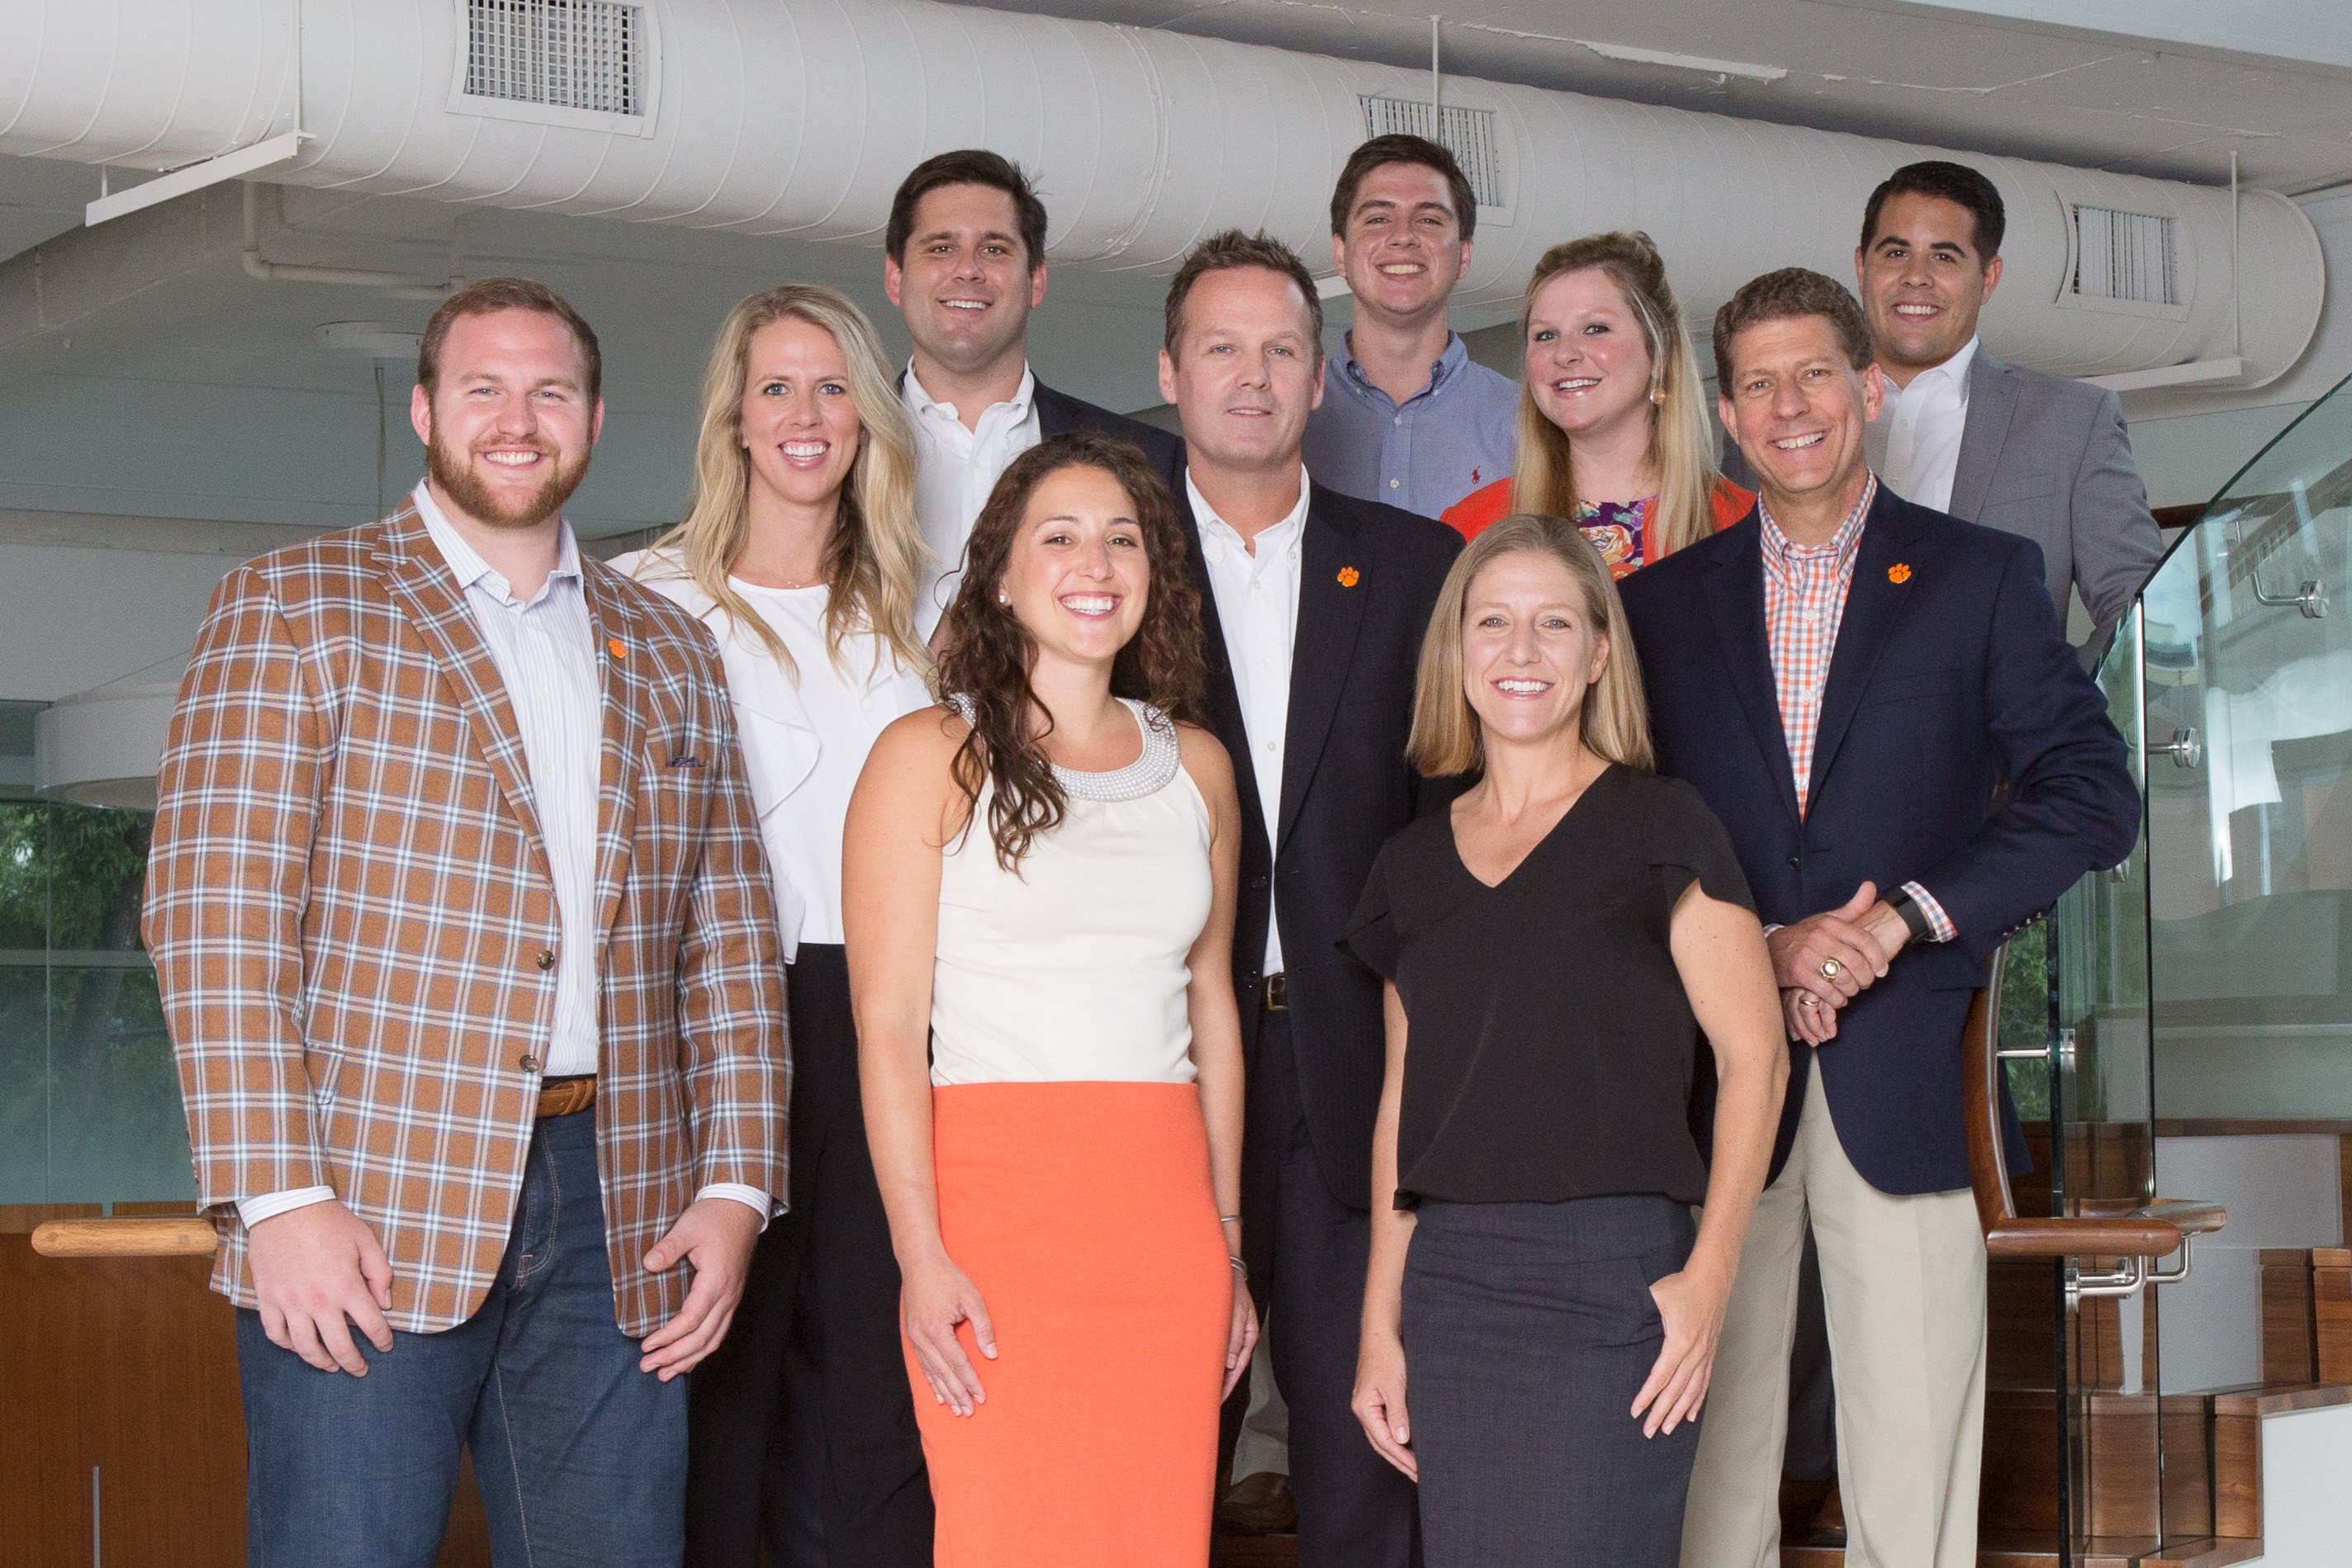 JMI Sports Announces Hire of Clemson Sports and Campus Marketing Team